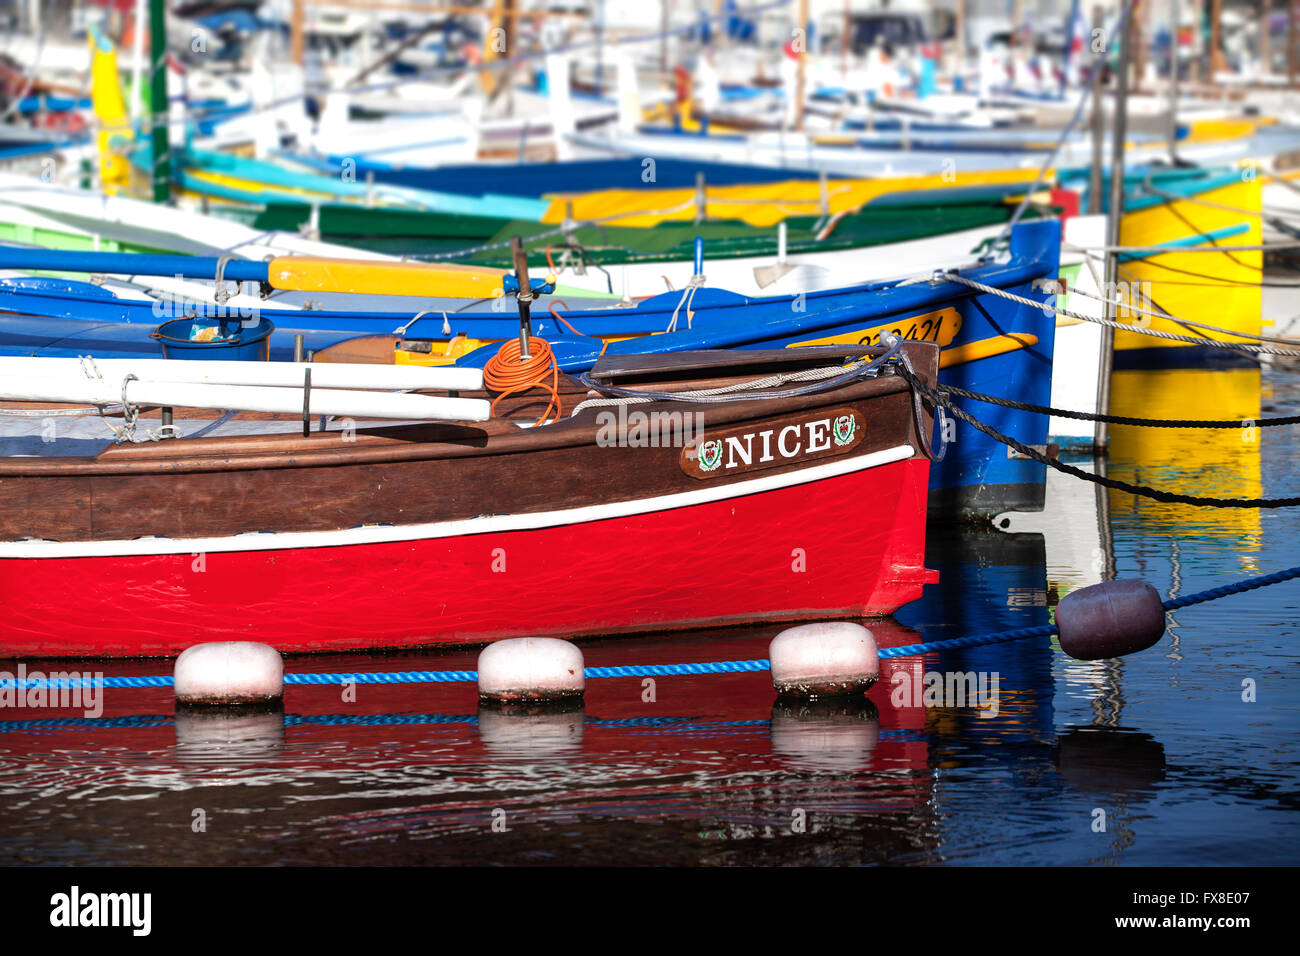 Nice Harbour - Fishing boats in the harbour - Cote D Azure - France - Stock Image